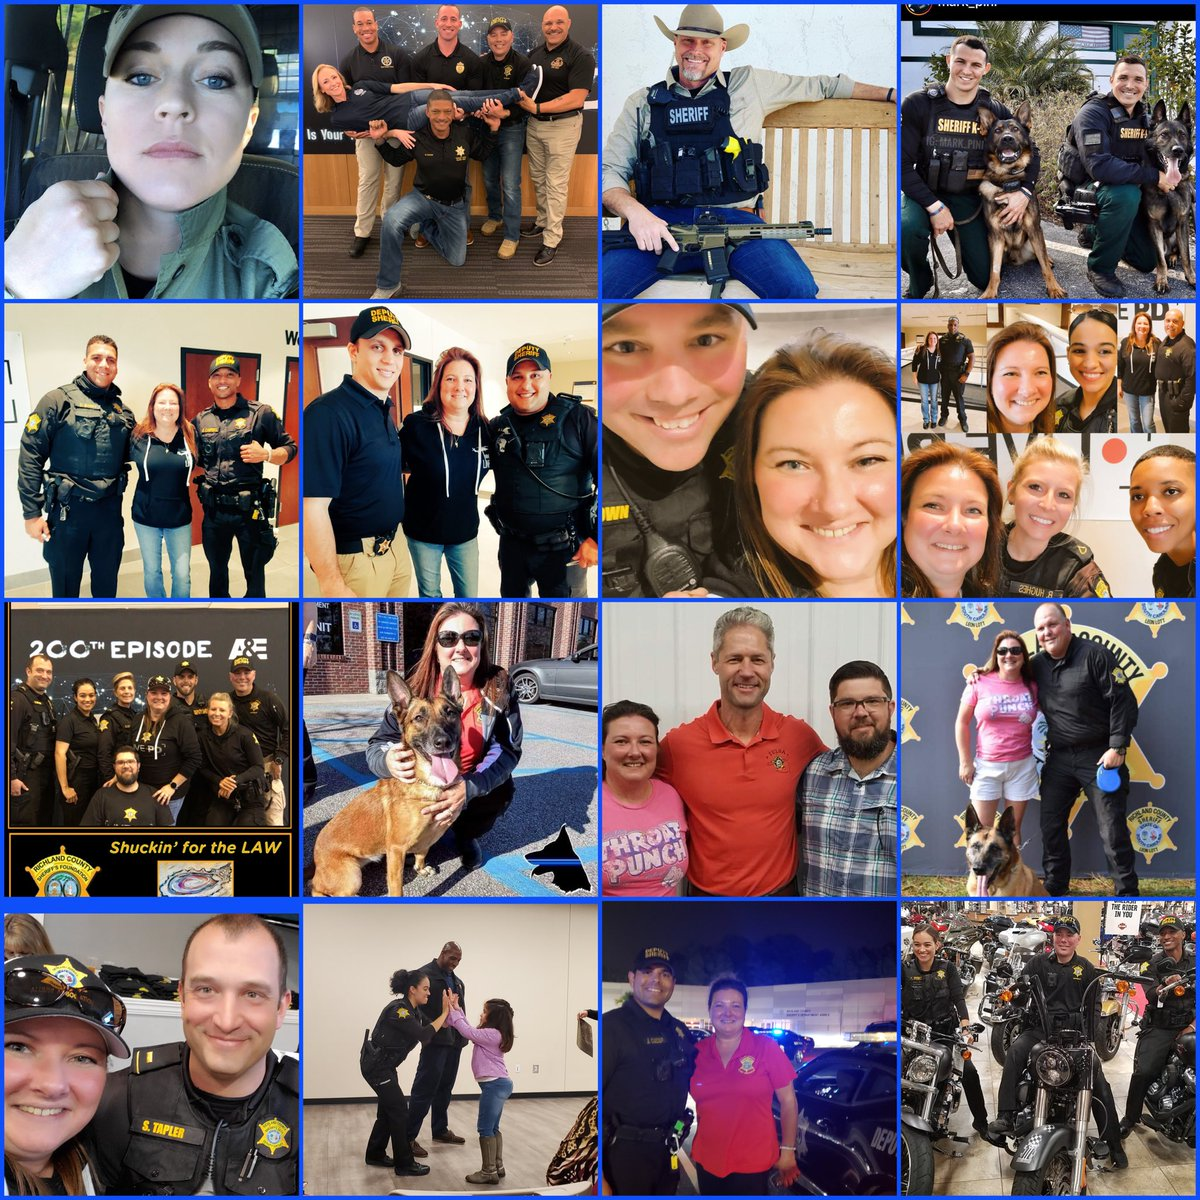 Tonight, the first night #LivePD is not on the air. The top row, along with many others, are some that I havent met. But, as you can see, I have the extreme pleasure of meeting and hanging out with the others. Thanks 2ALL for your hard work, youre already missed!💙 #BackTheBlue